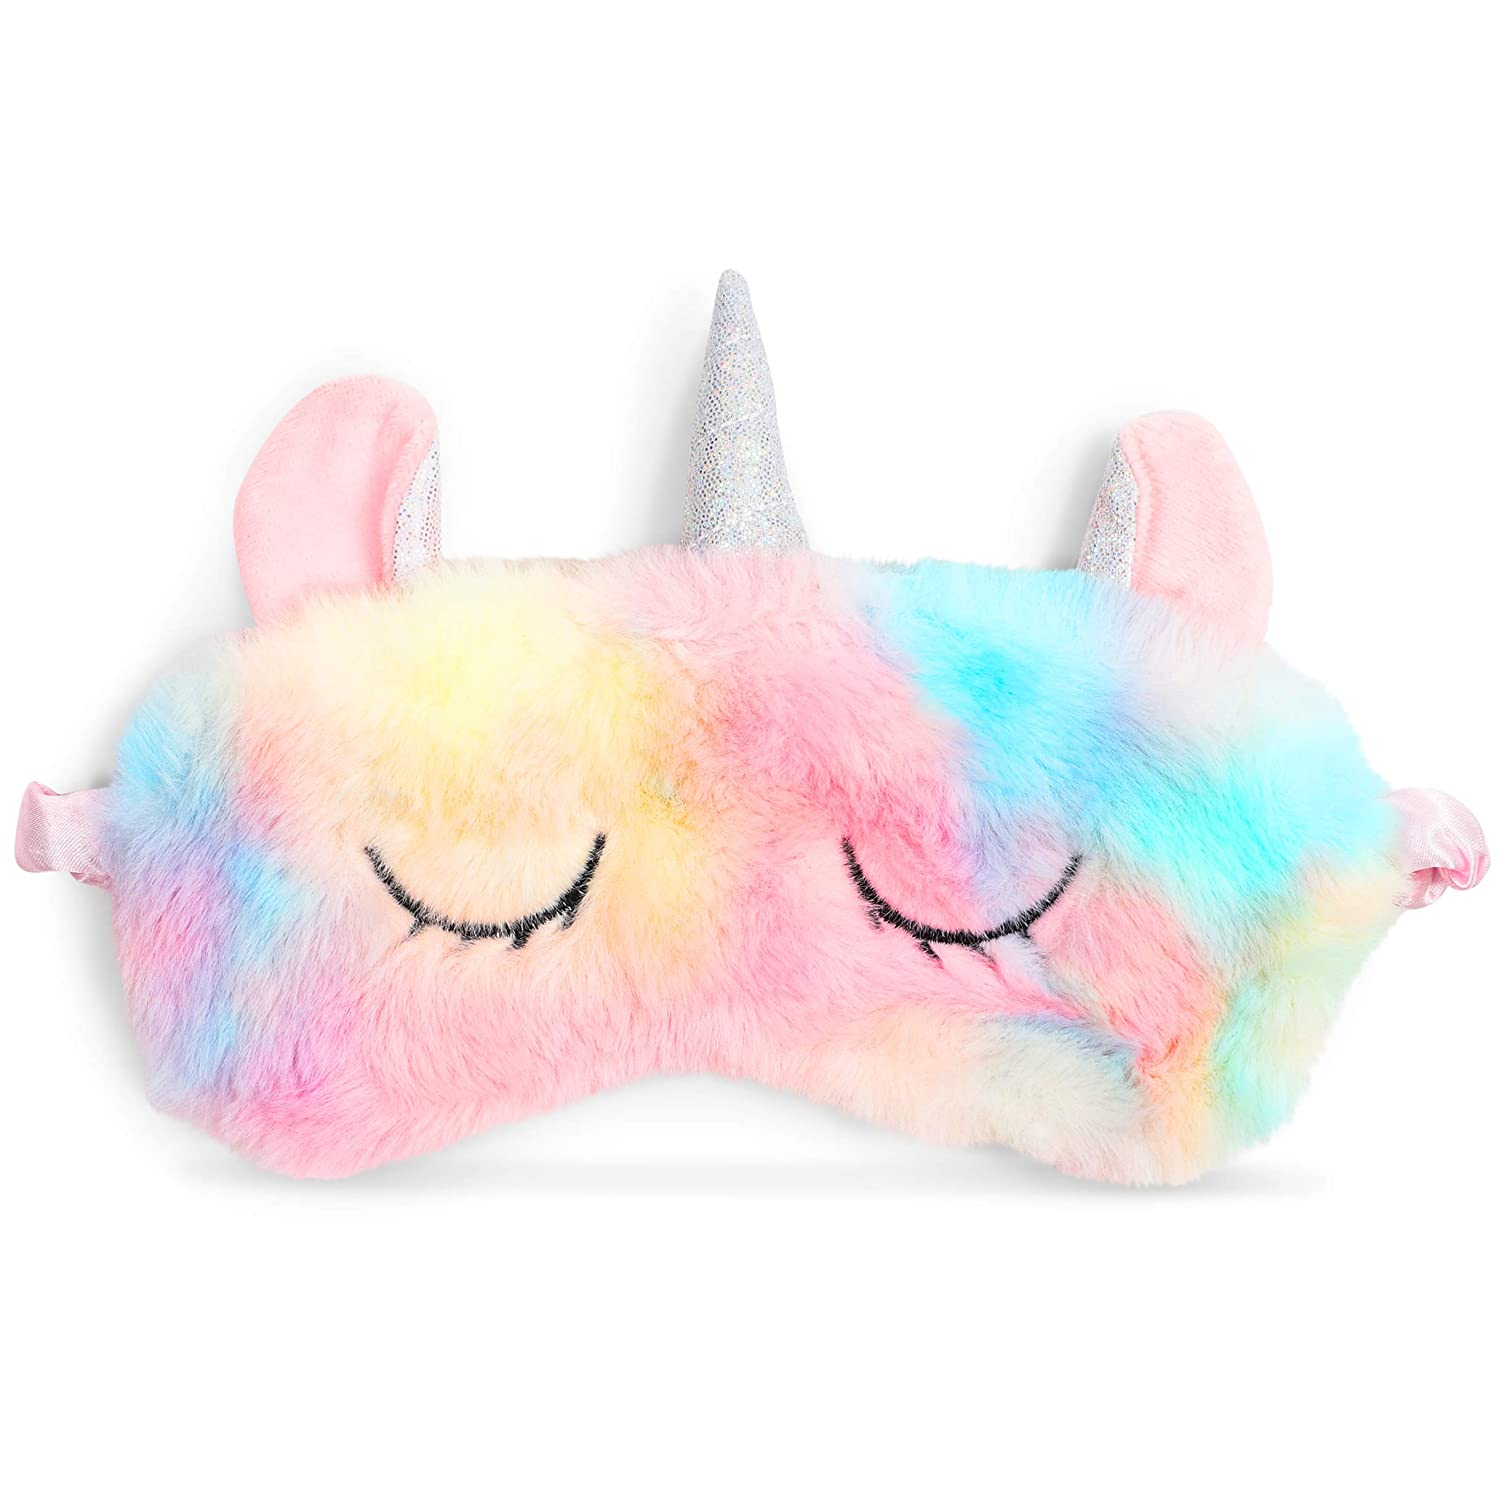 Satin and Faux Fur Unicorn Sleep Eye Mask in Tie-Dyed Design (7.5 x 6 In)